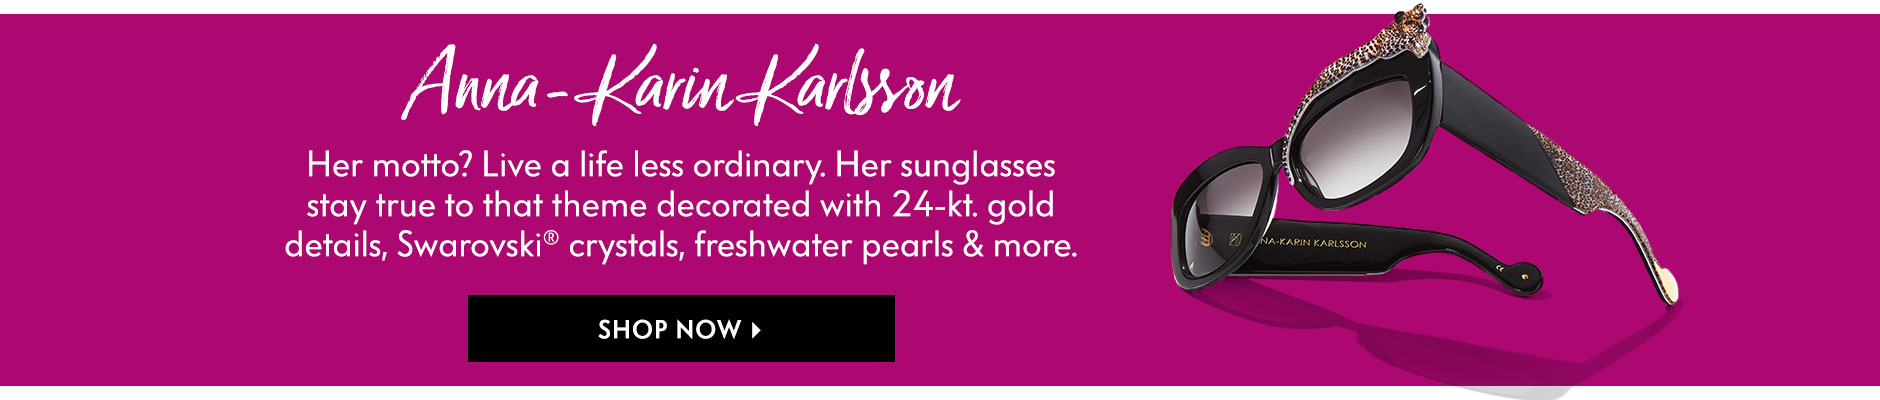 Anna-Karin Karlsson - Her motto? Live a life less ordinary. Her sunglasses stay true to that theme decorated with 24-kt. gold details, Swarovski?? crystals, freshwater pearls & more.